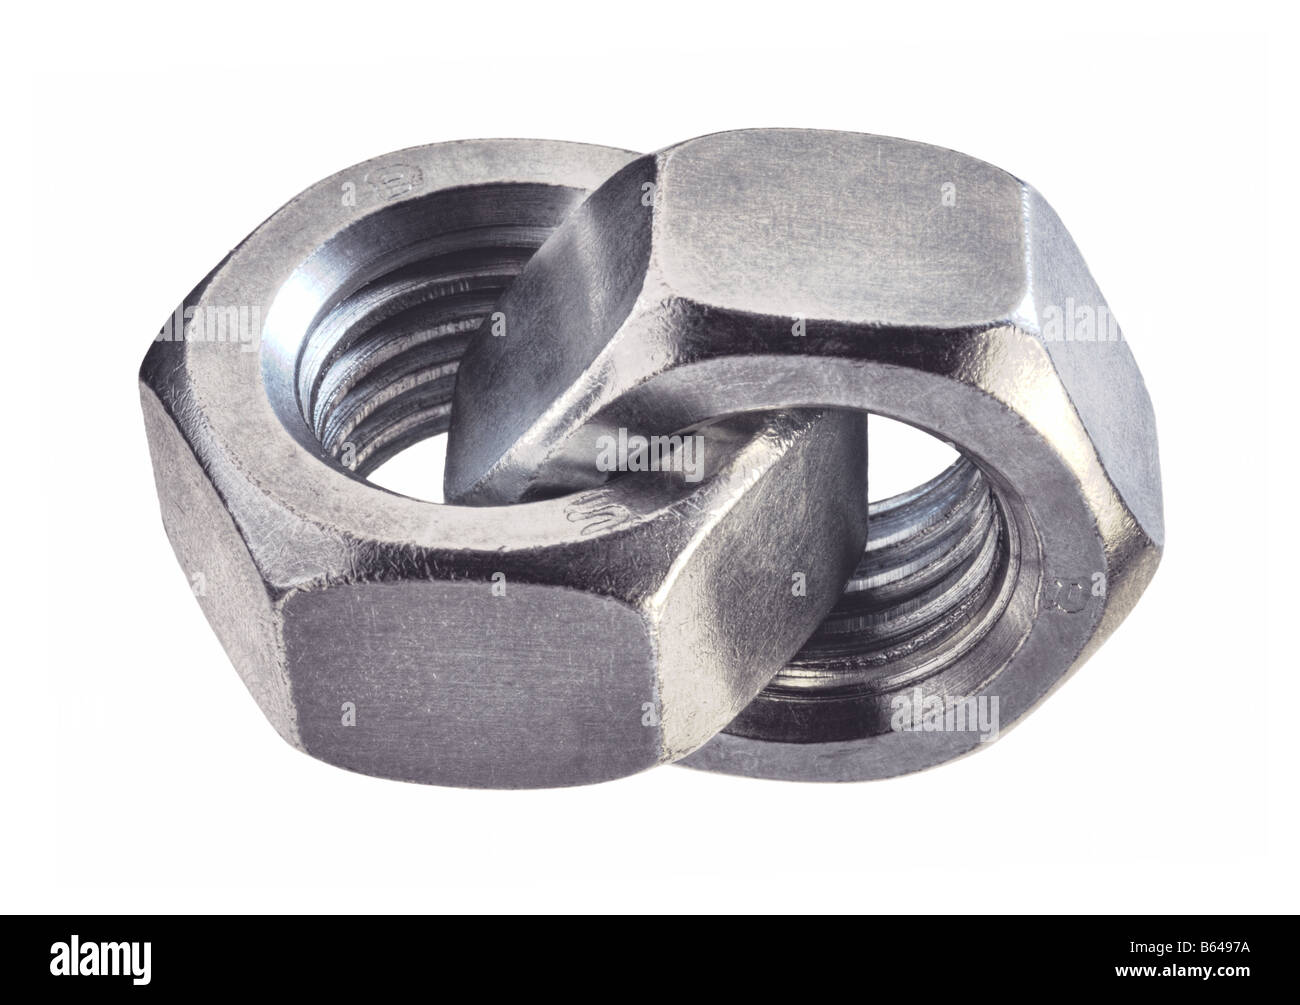 Bolts joined together - Stock Image